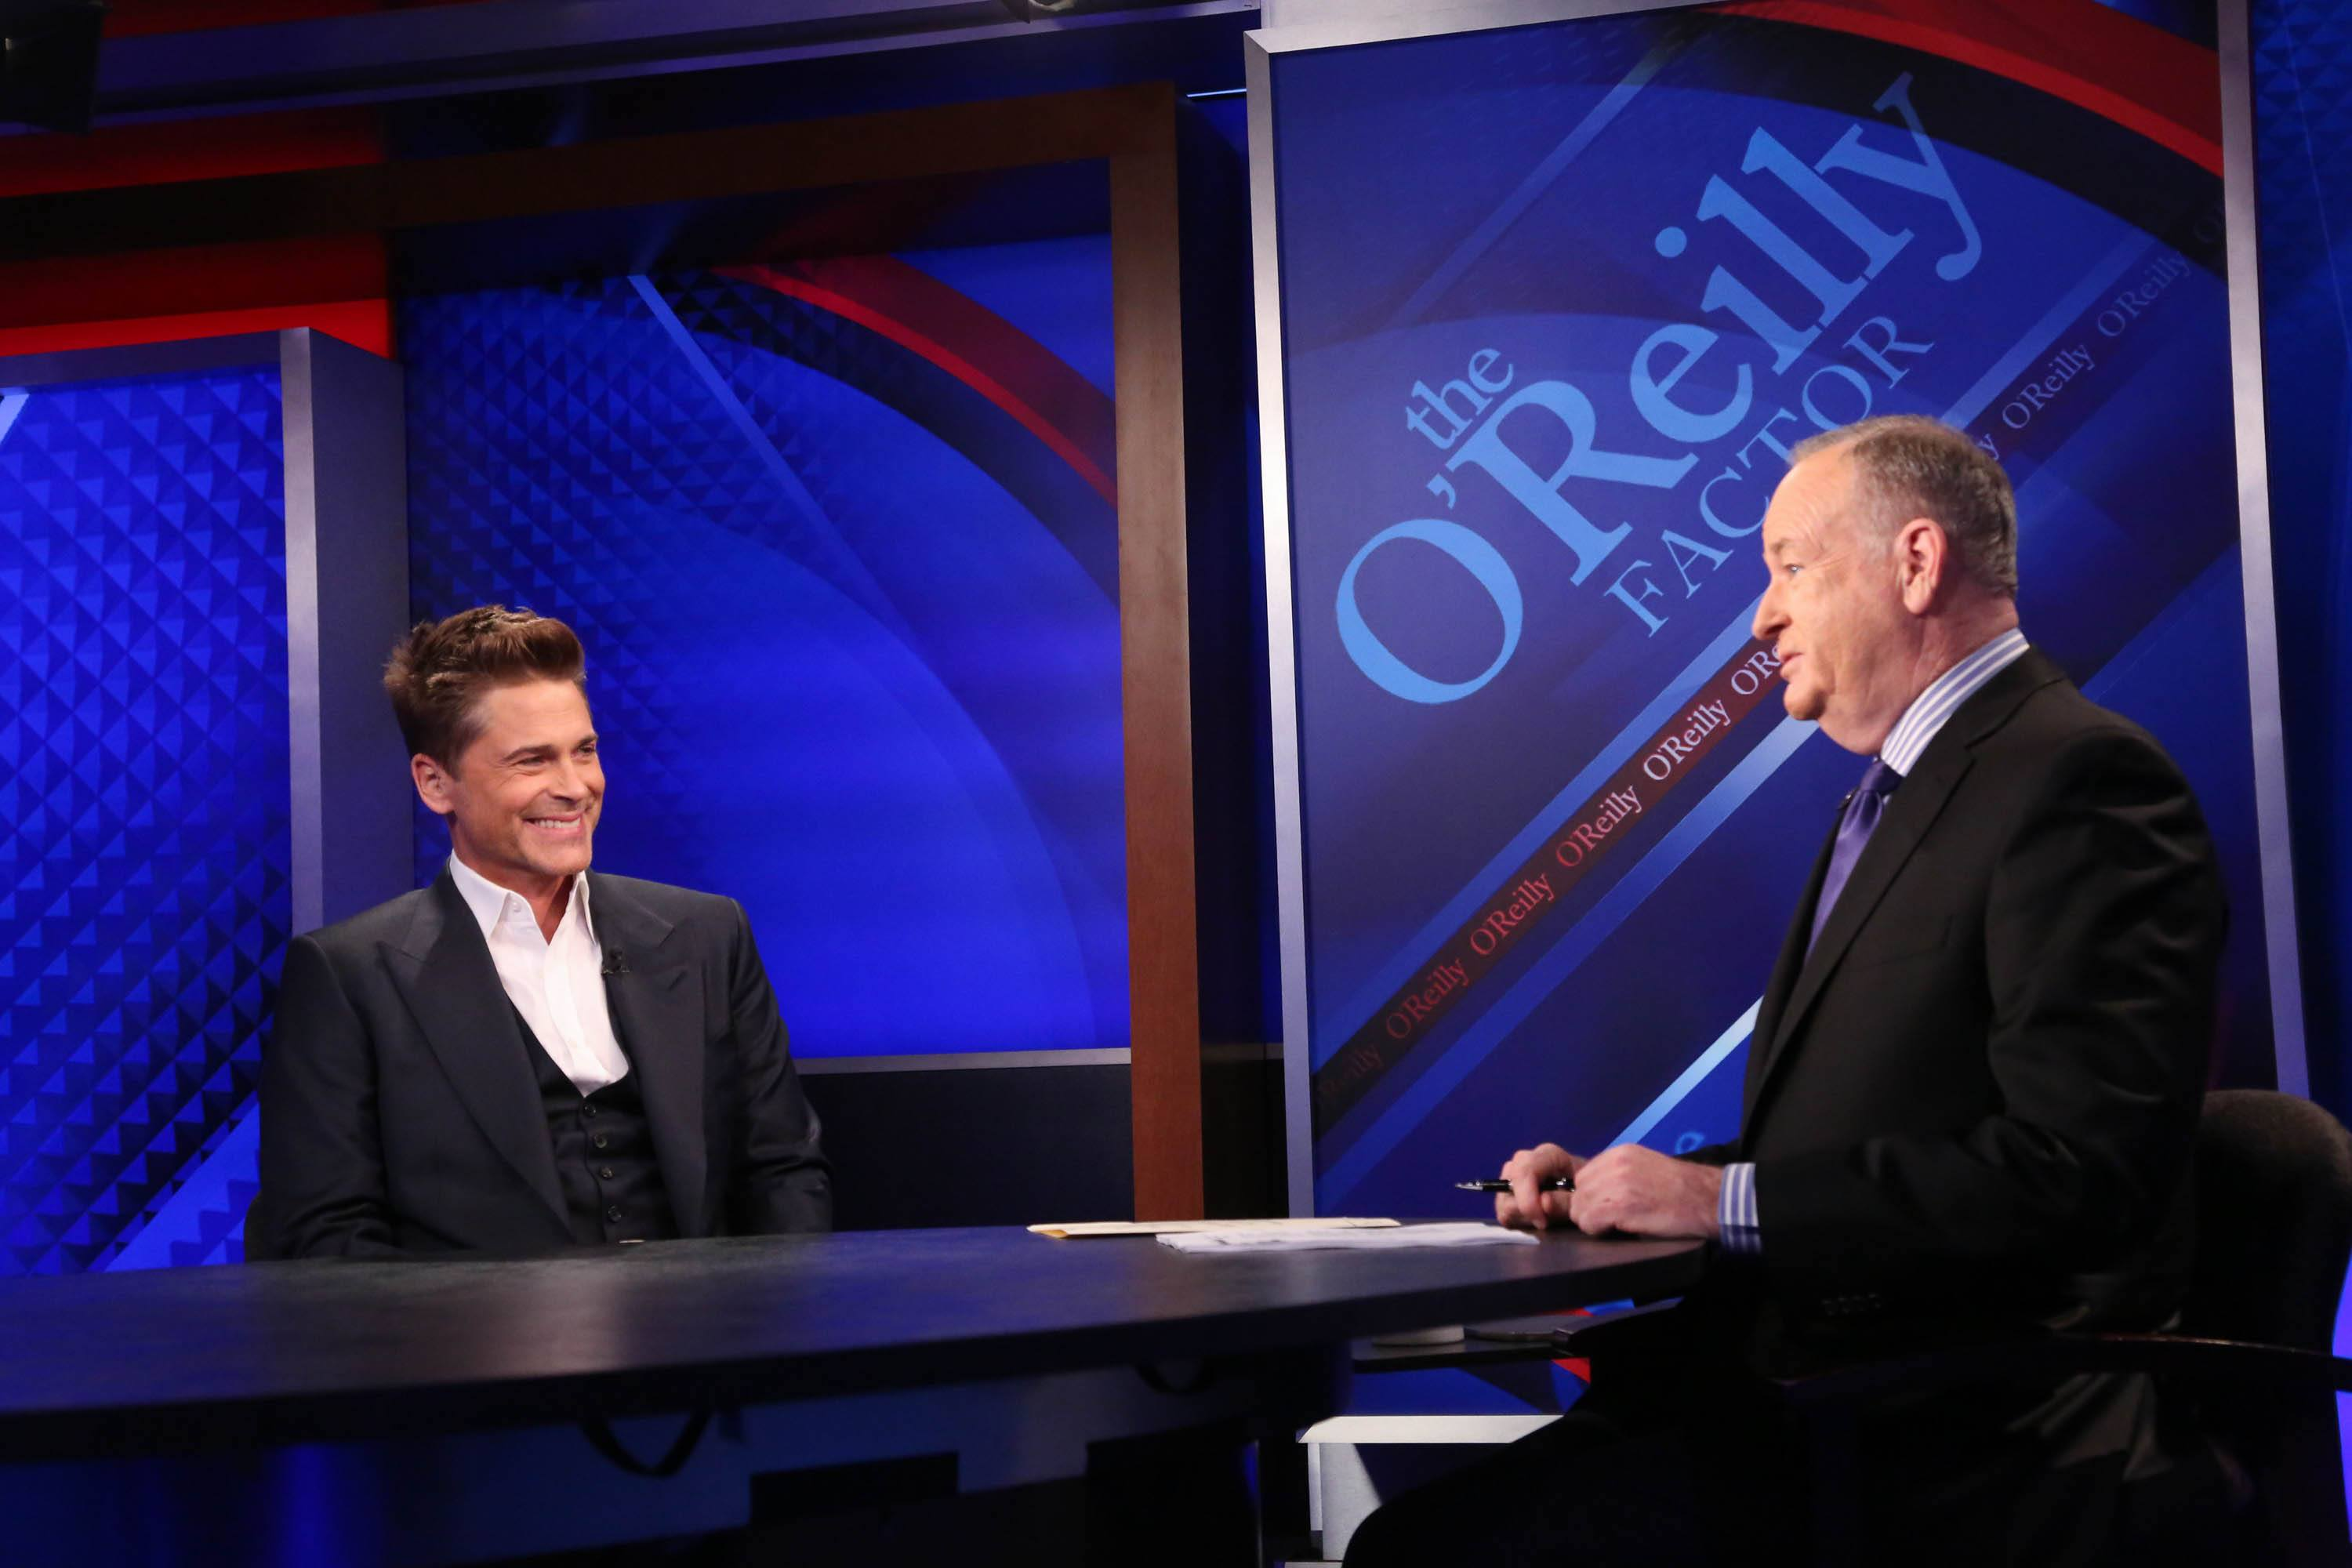 Bill O'Reilly talking to Rob Lowe.